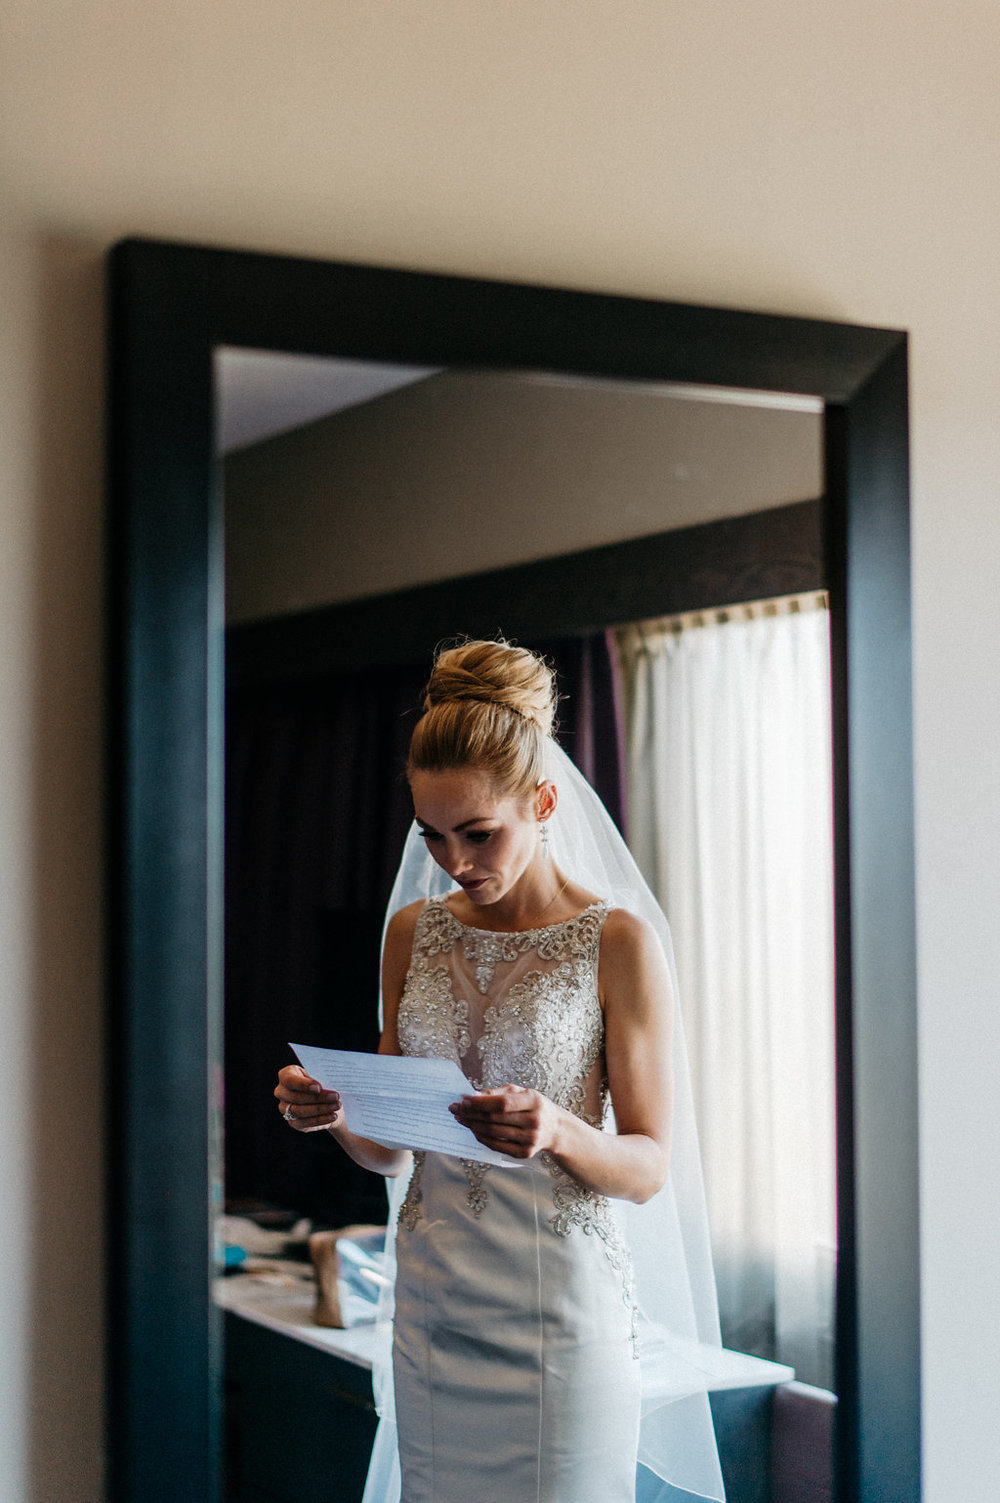 engle-olson-gene-pease-st-paul-wedding-11.jpg